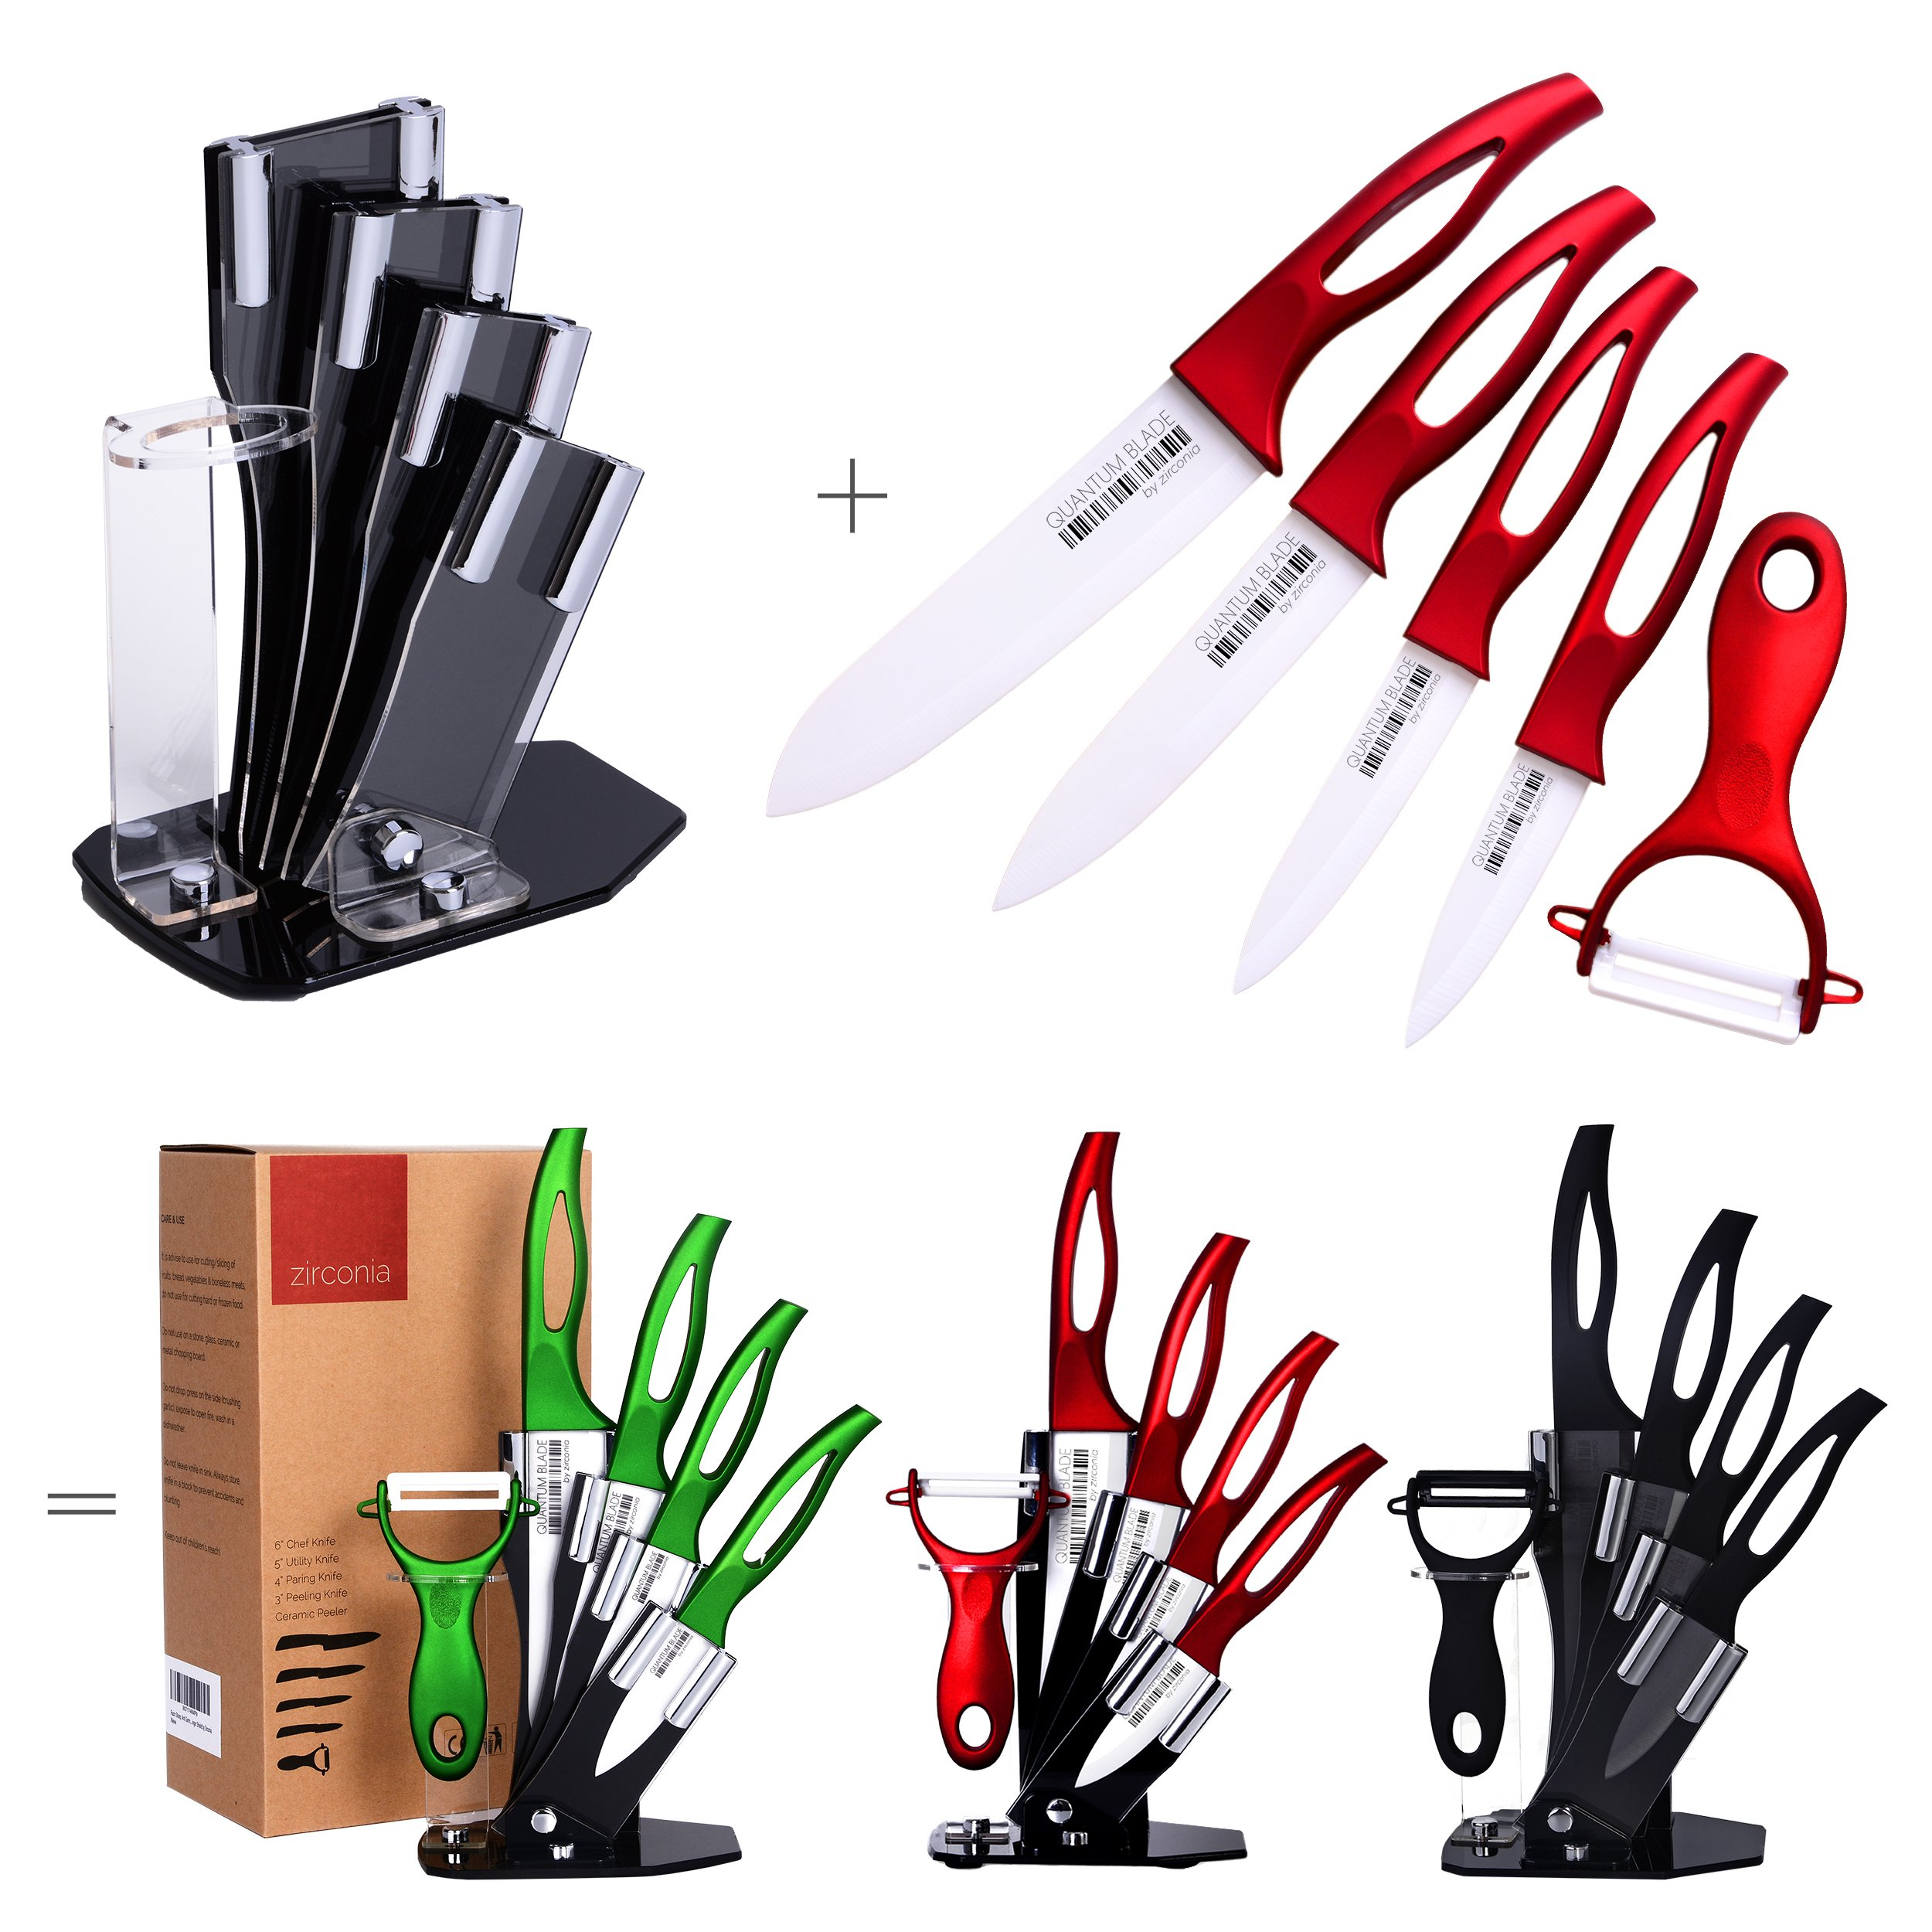 Stylish, Anti Germ, PREMIUM Kitchen Knives, Professional, 6 Piece Red Ceramic Knife Set, Four Razor Sharp, Stain Proof, Double-Edged Ceramic Knives, Ceramic Peeler and Knife Holder by Zirconia